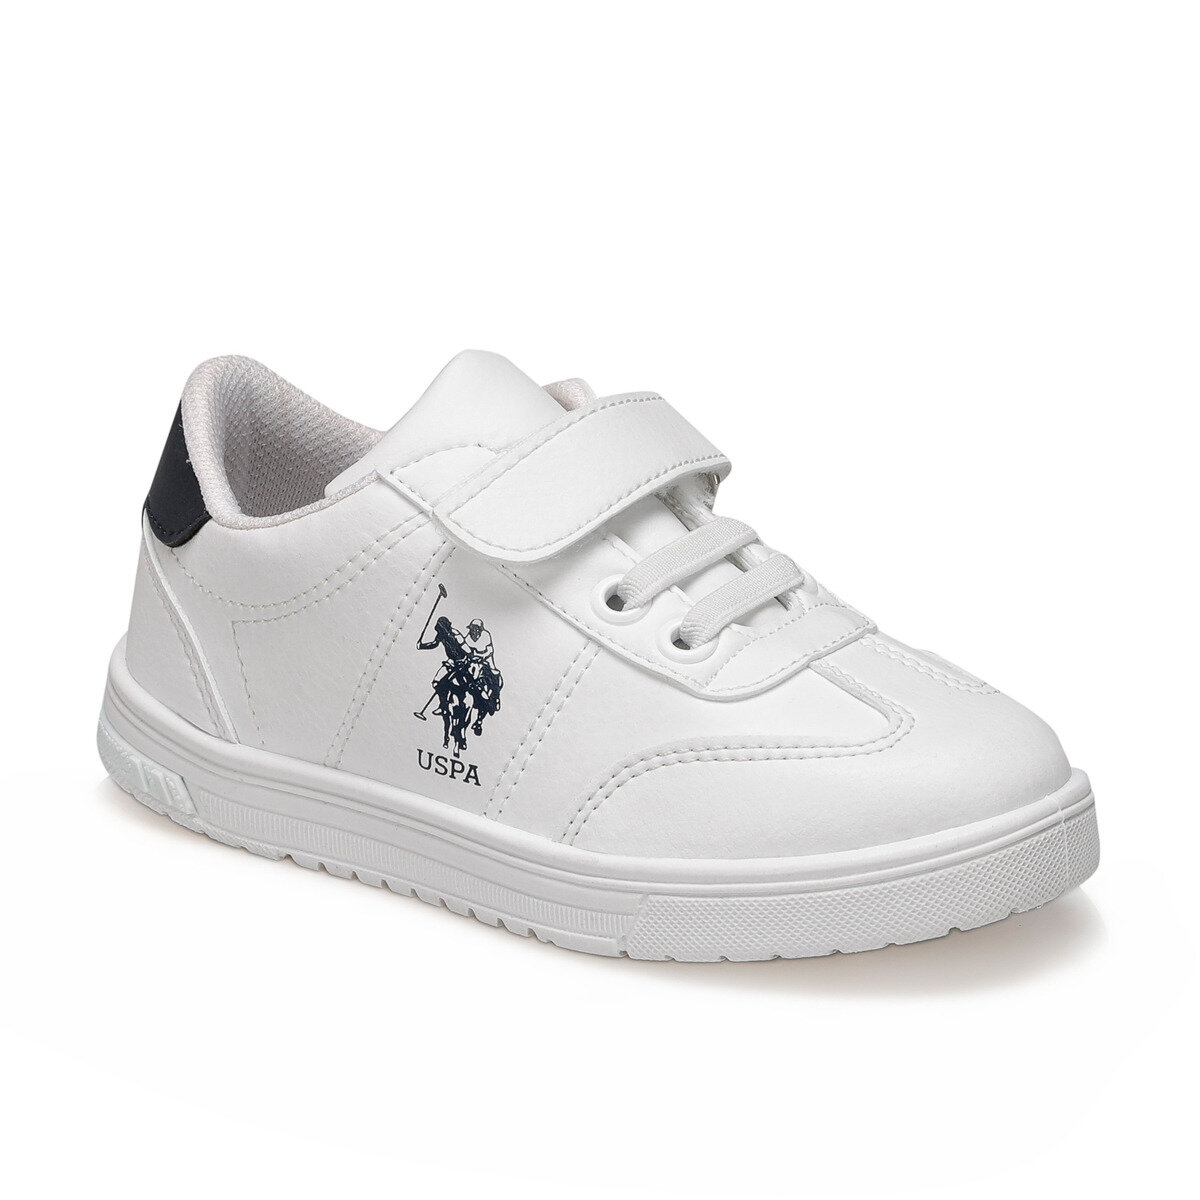 FLO GLOCK White Male Child Sneaker Shoes U.S. POLO ASSN.